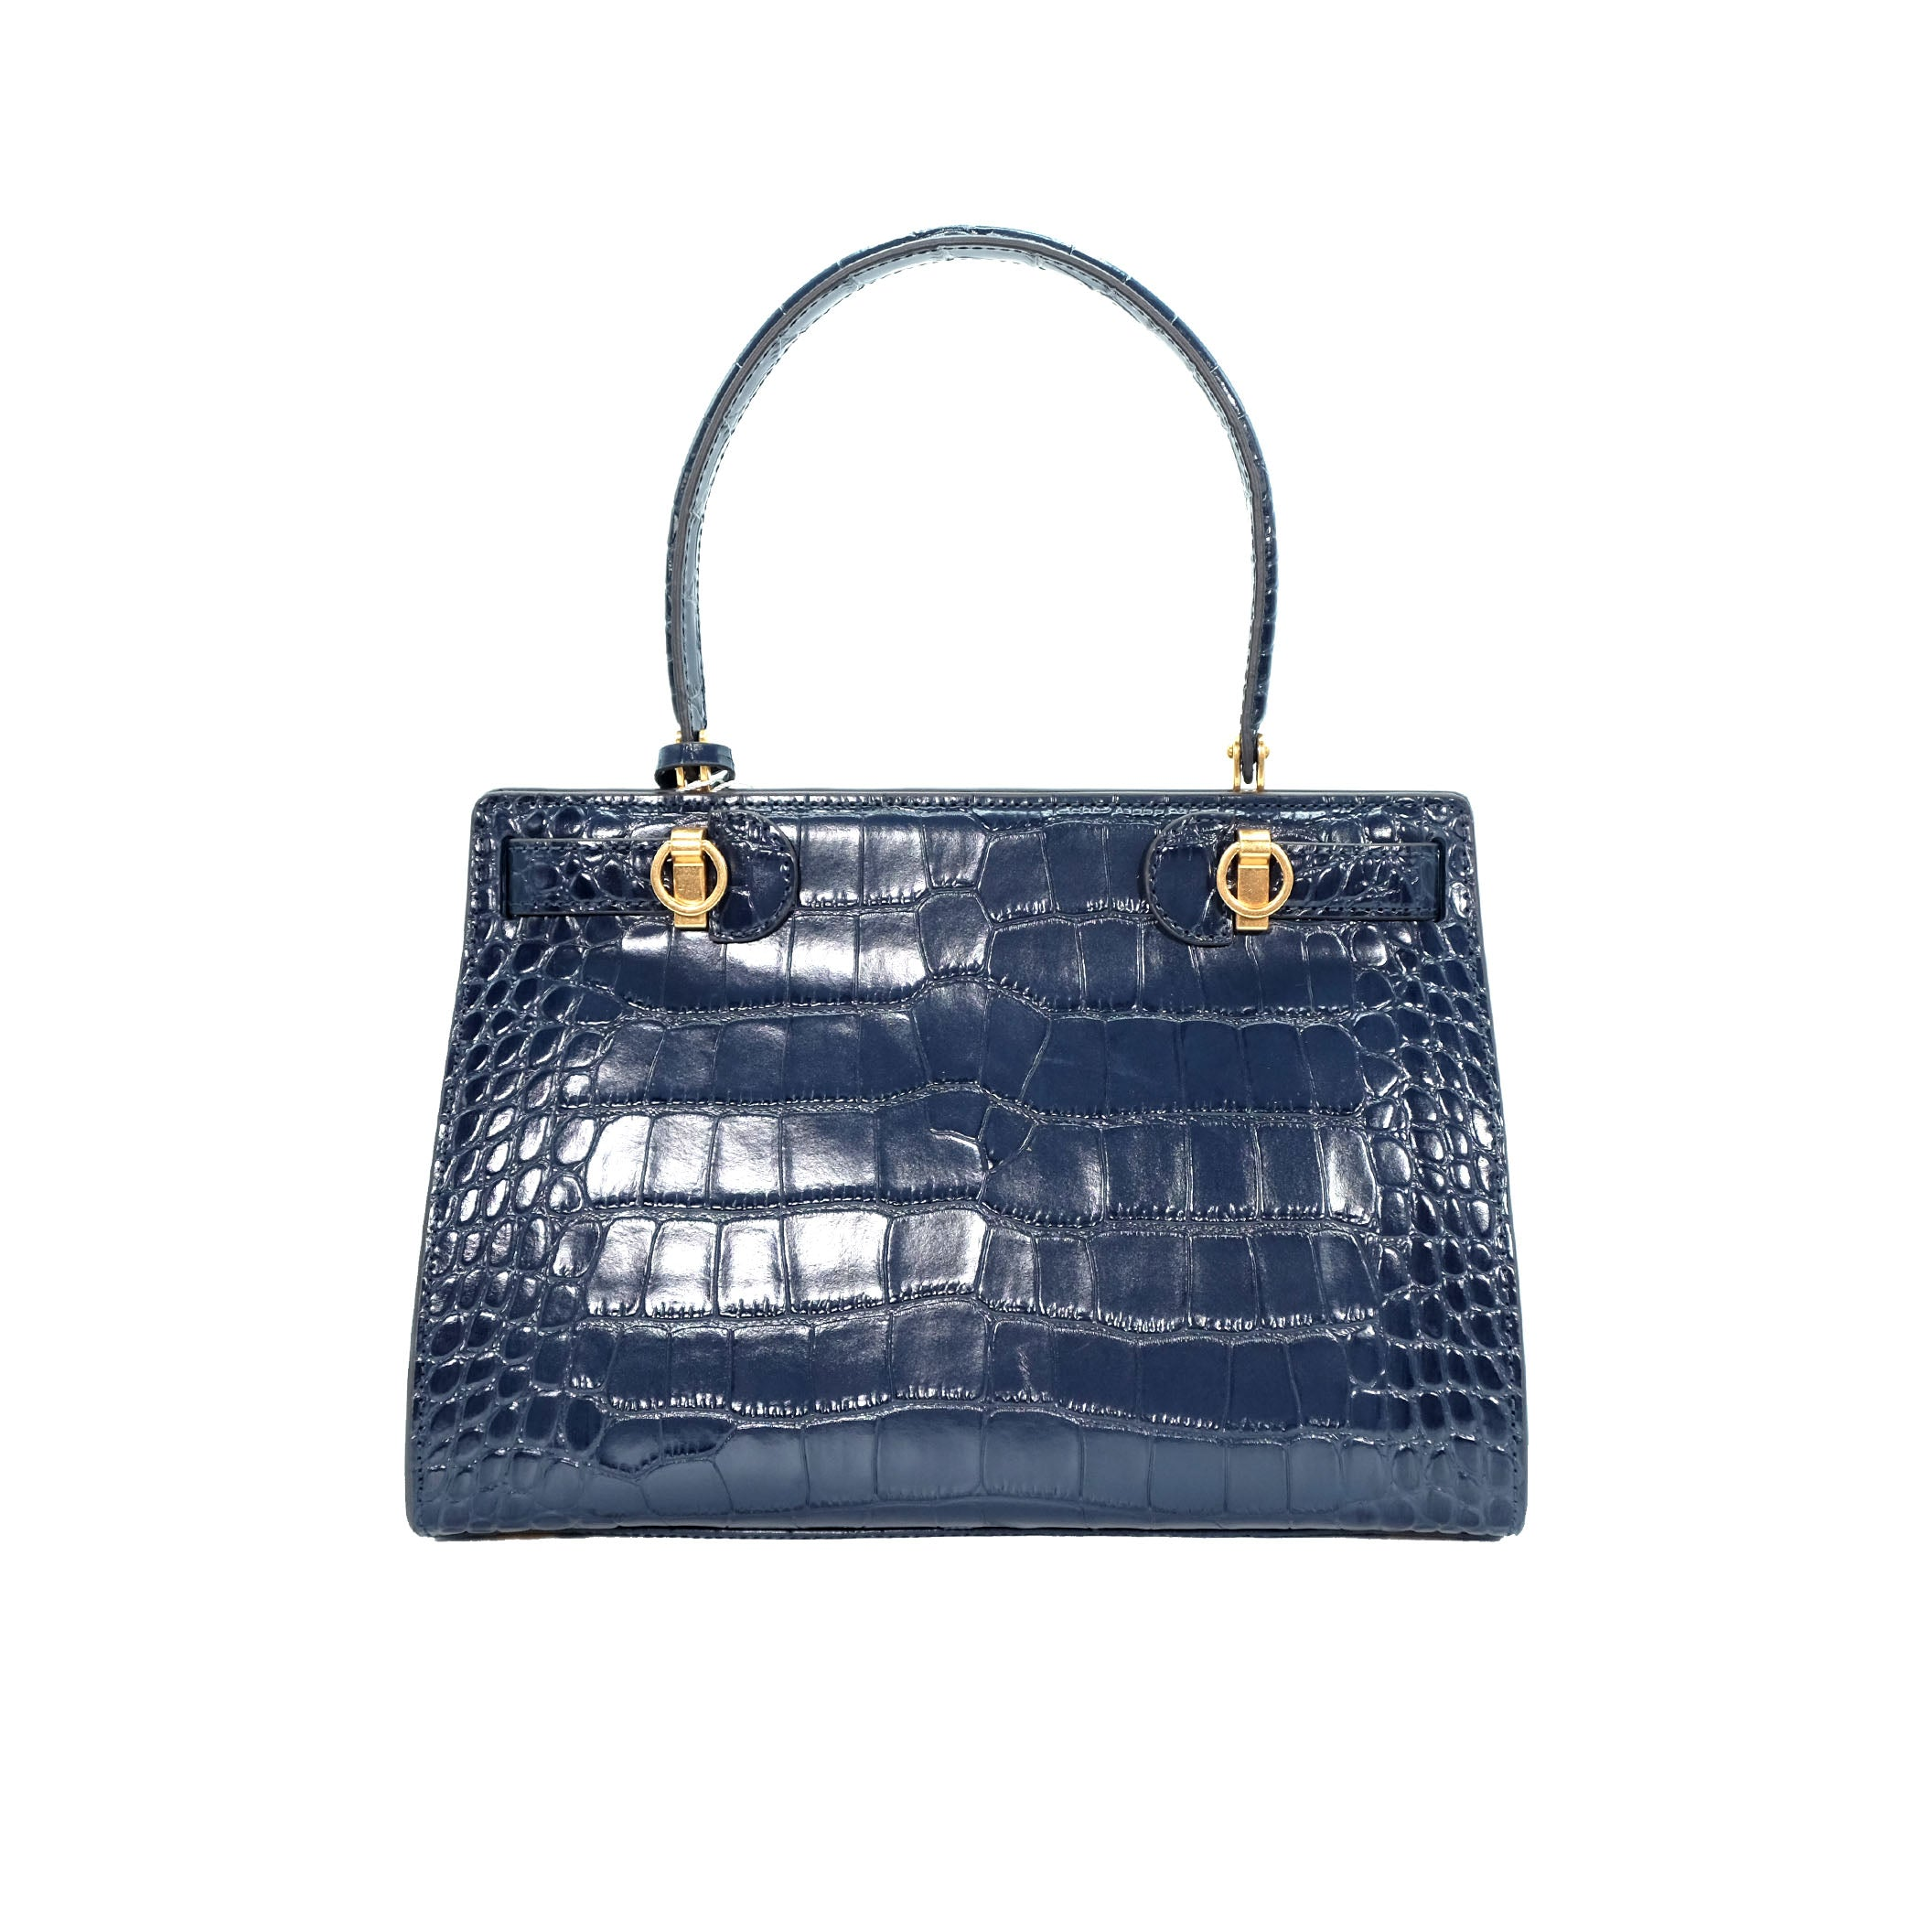 Lee Radziwill Croc Embossed Small Bag